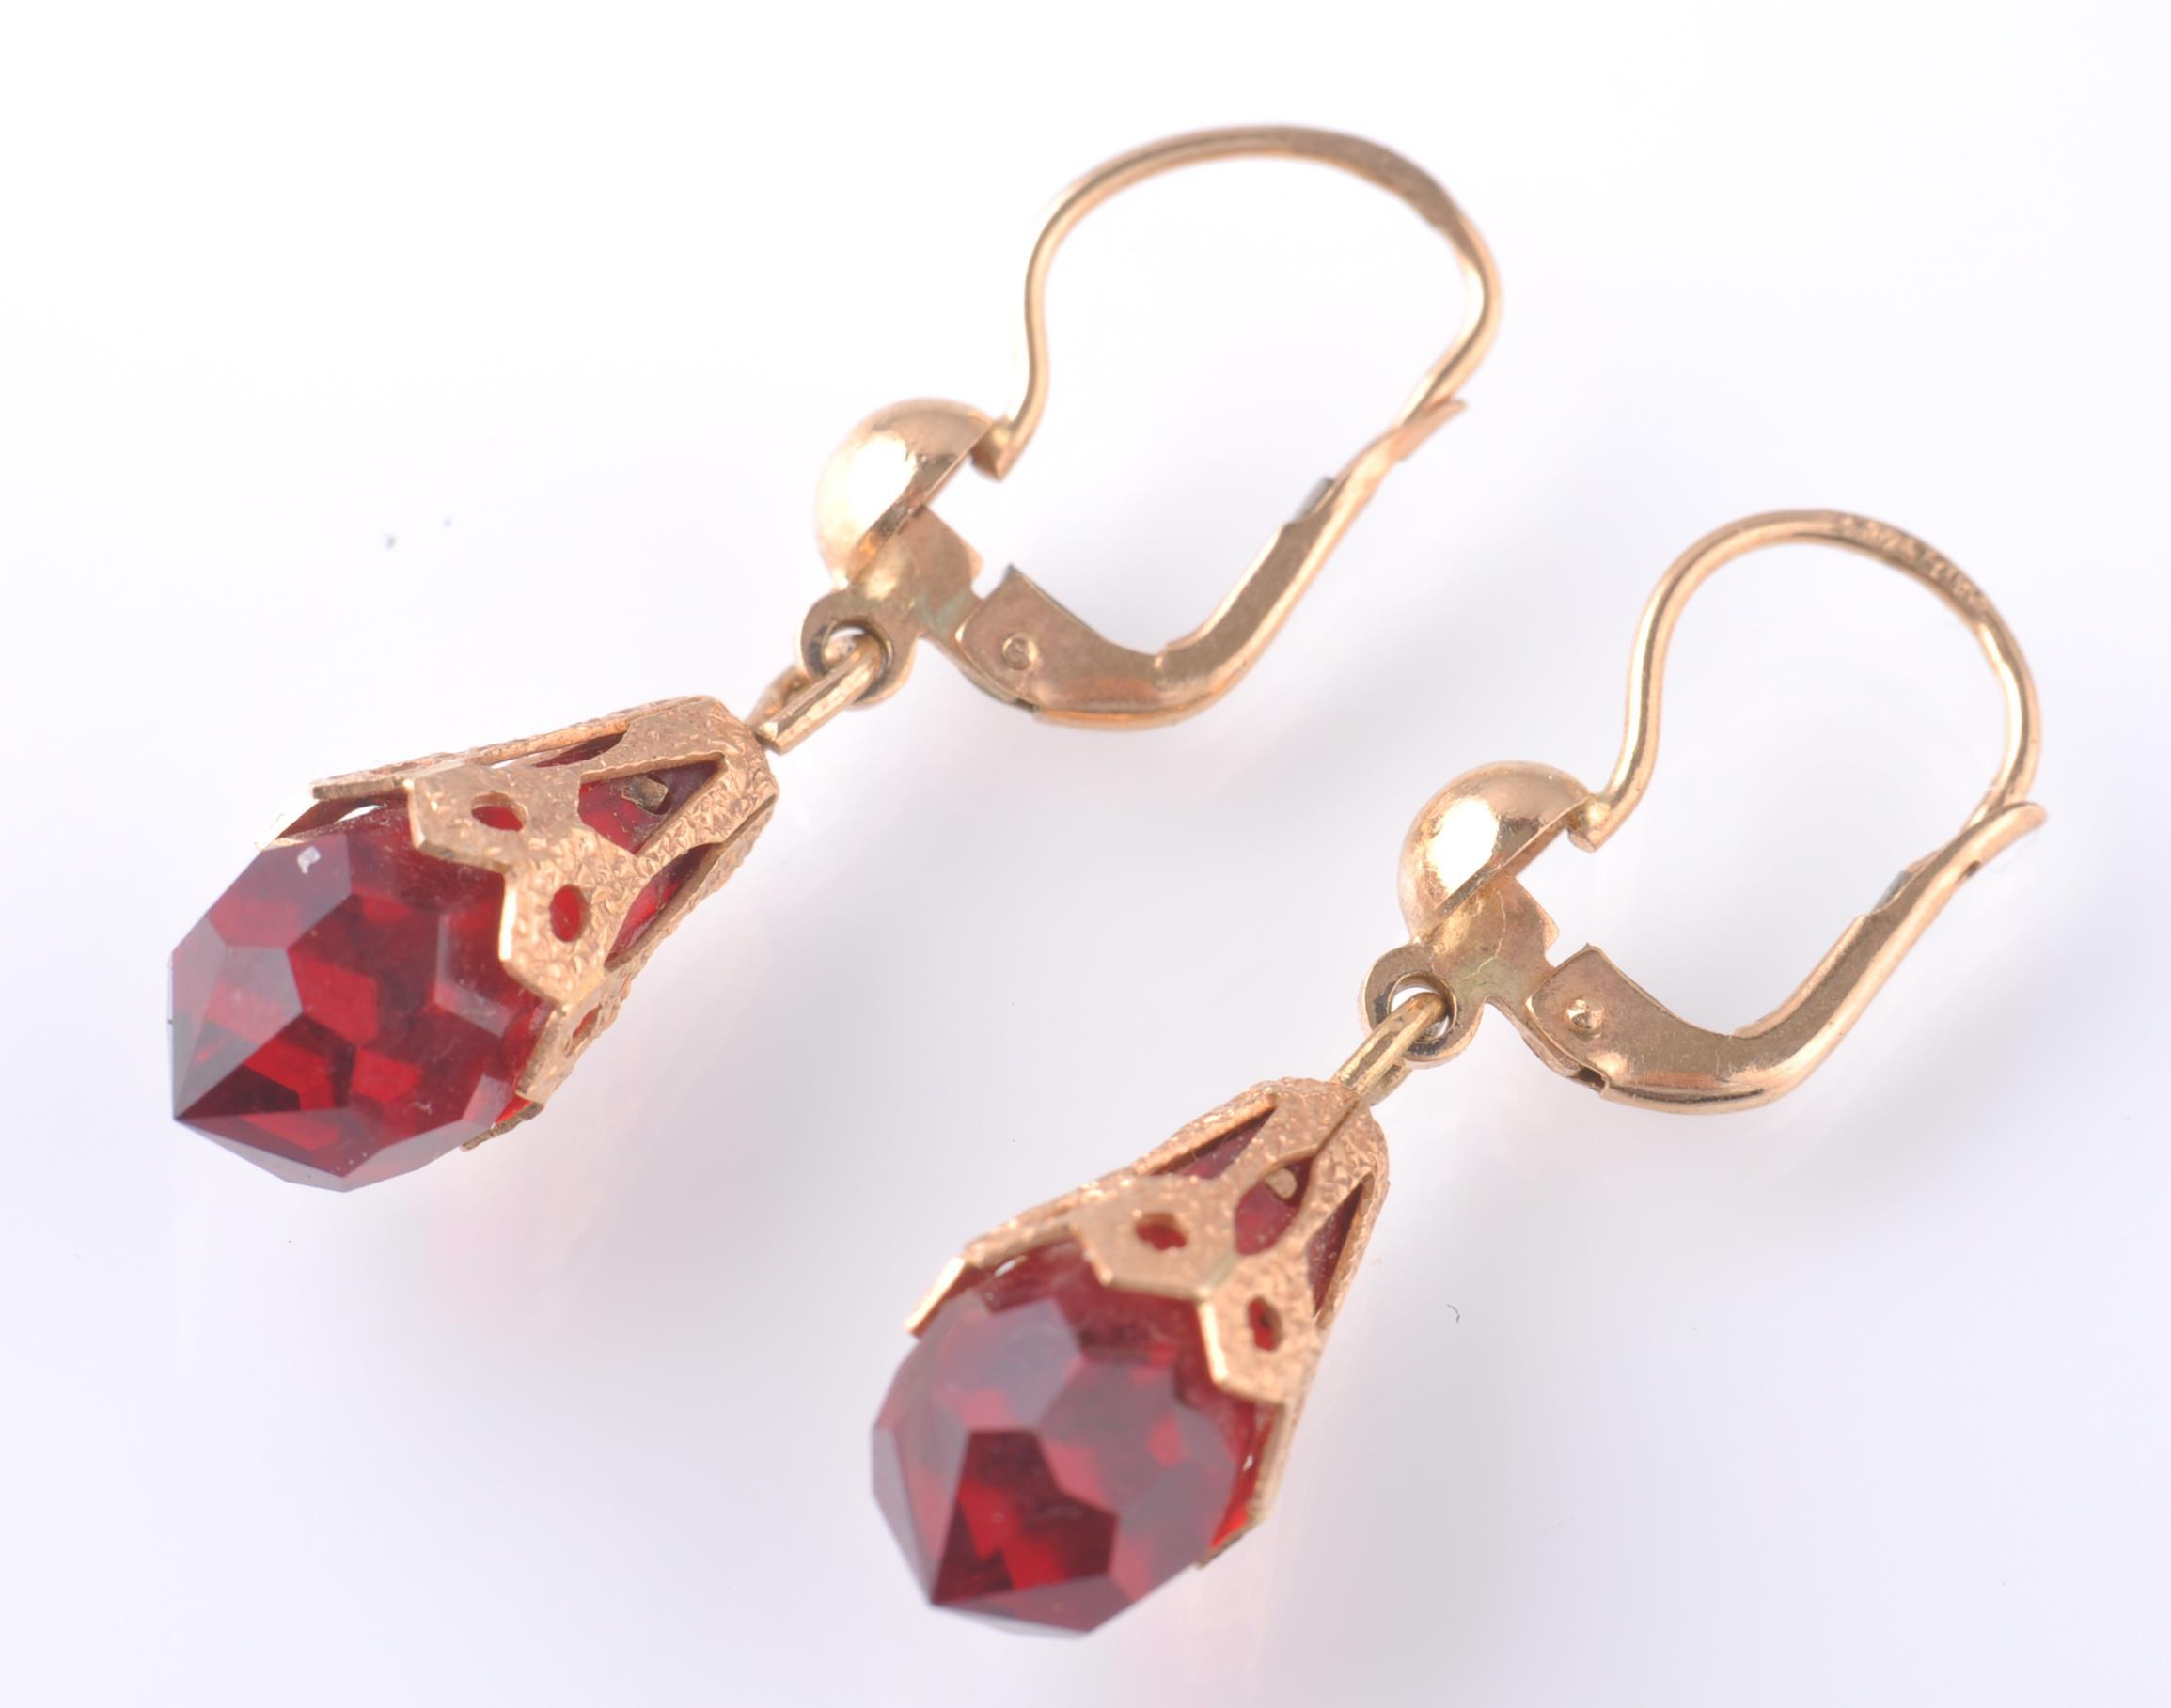 A PAIR OF ITALIAN GOLD DROP EARRINGS